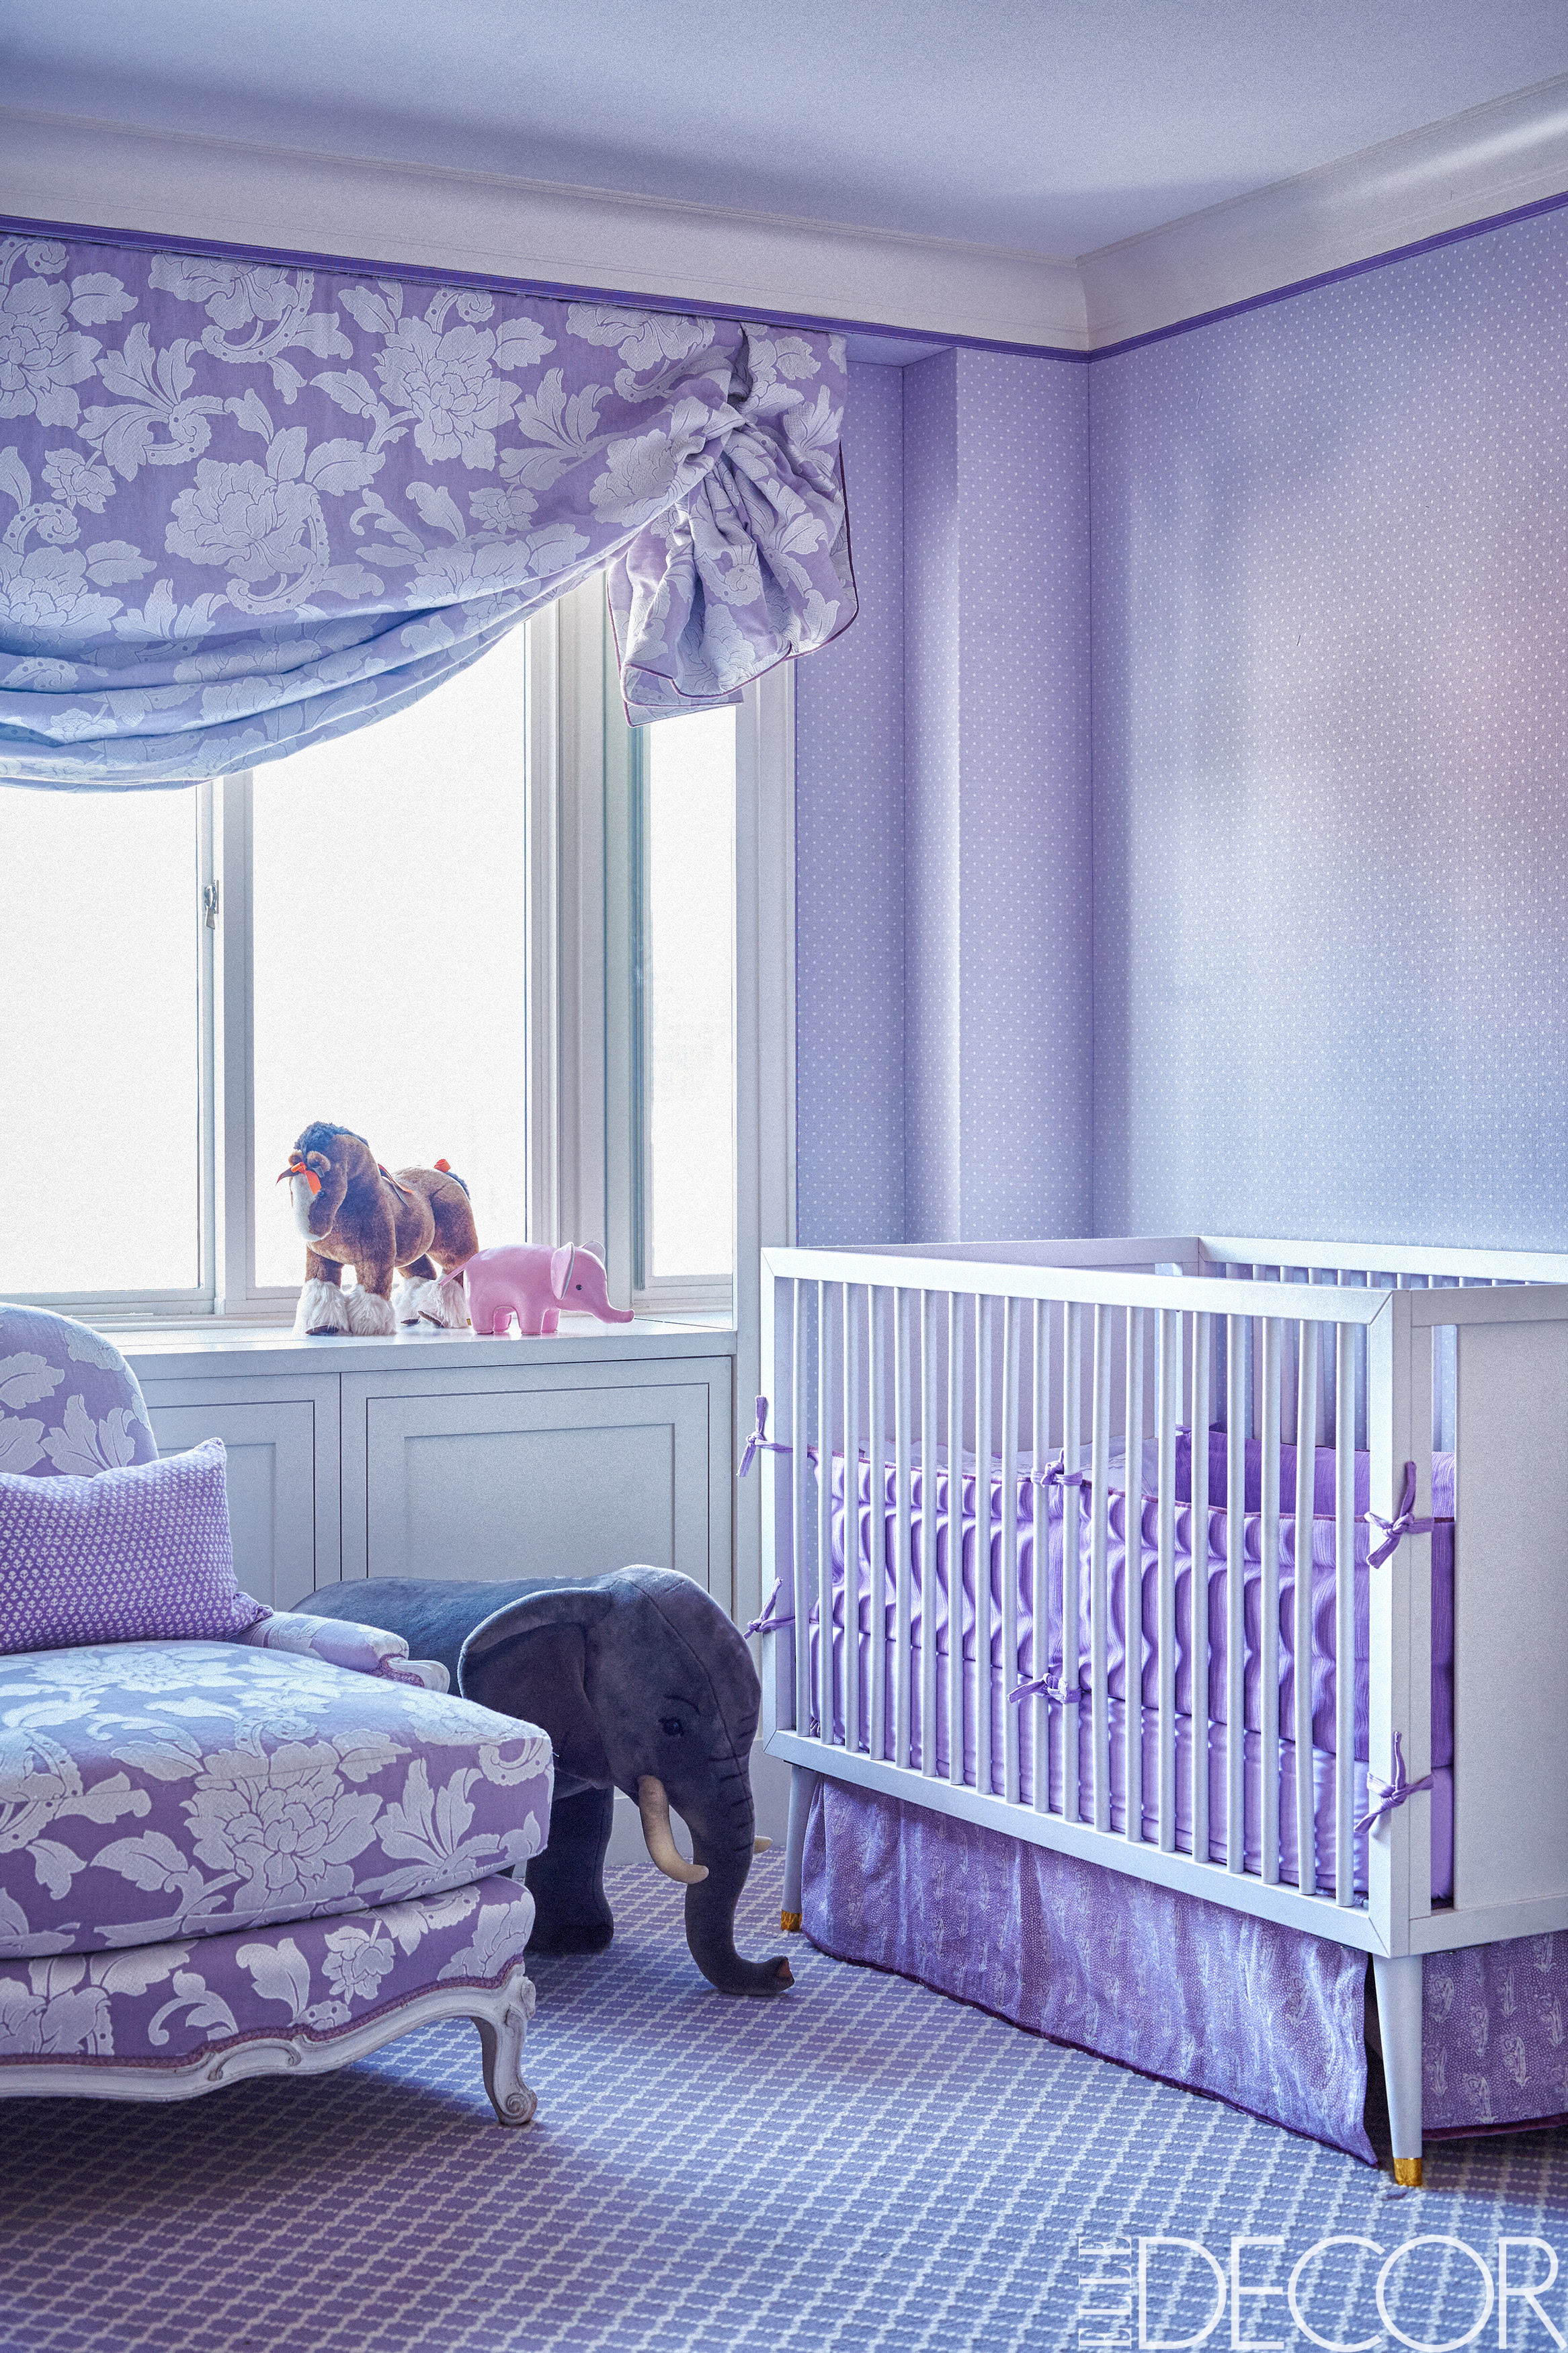 8 Best Baby Room Ideas - Nursery Decorating Furniture & Decor